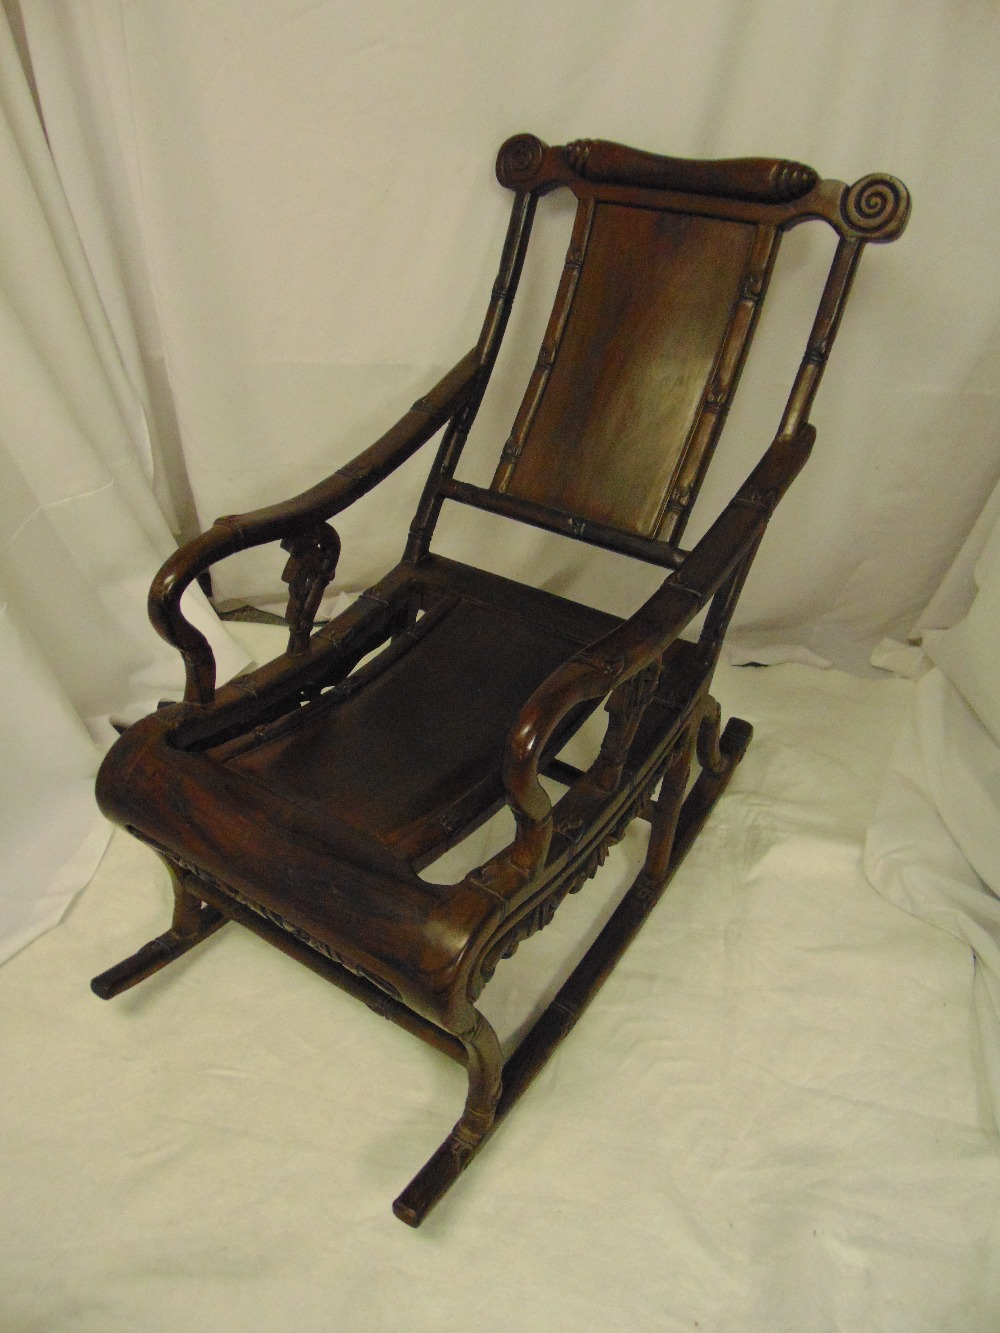 Chinese hardwood rocking or moon chair of simulated bamboo form with scrolling arms and runners